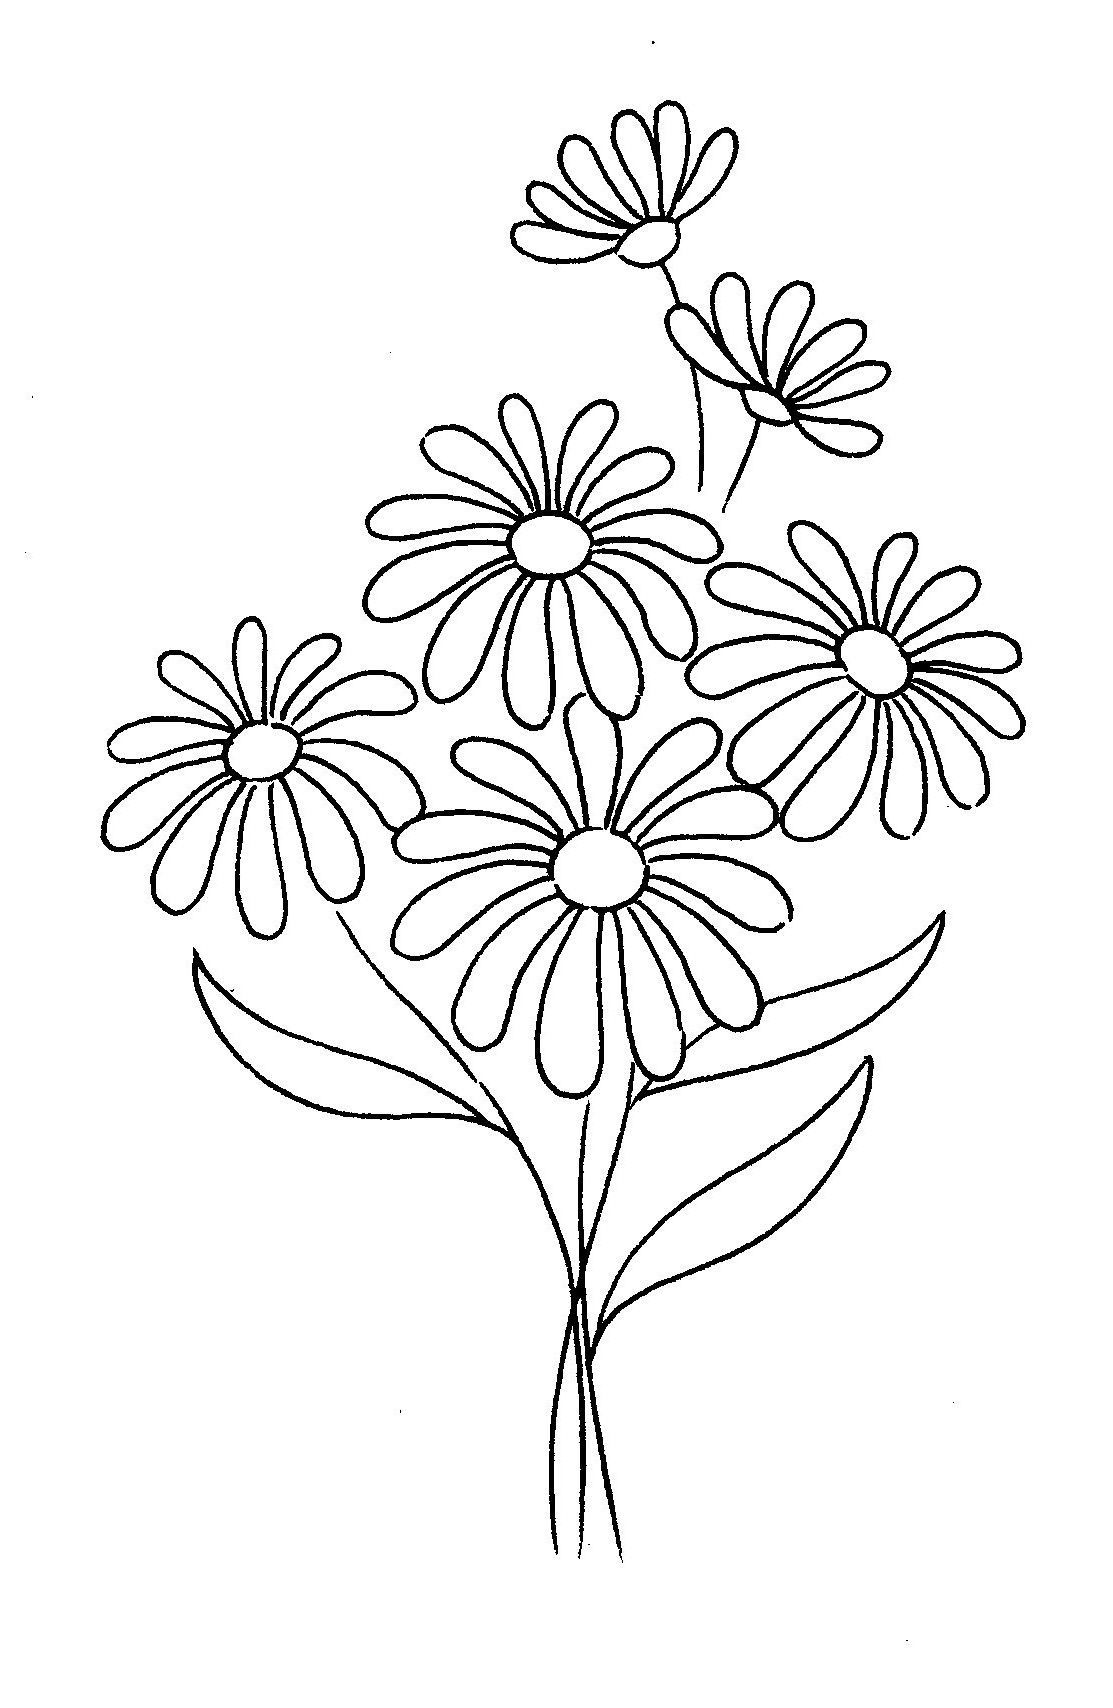 Tumblr Flower Drawing Daisy Daisies Drawing Tumblr Daisy Doodle